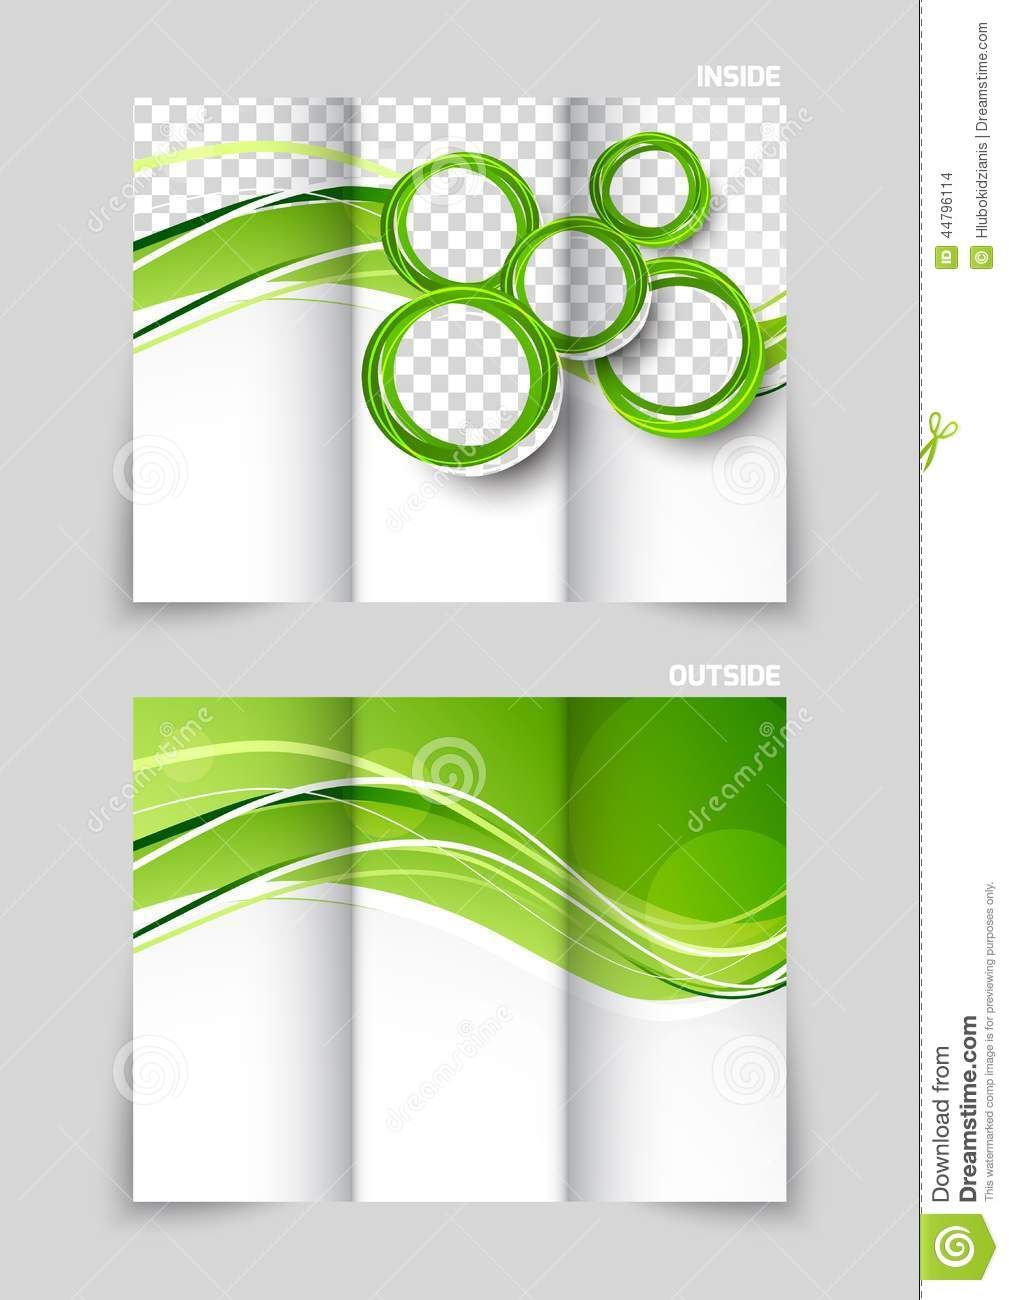 Tri Fold Brochure Template Design Download From Over 27 Million